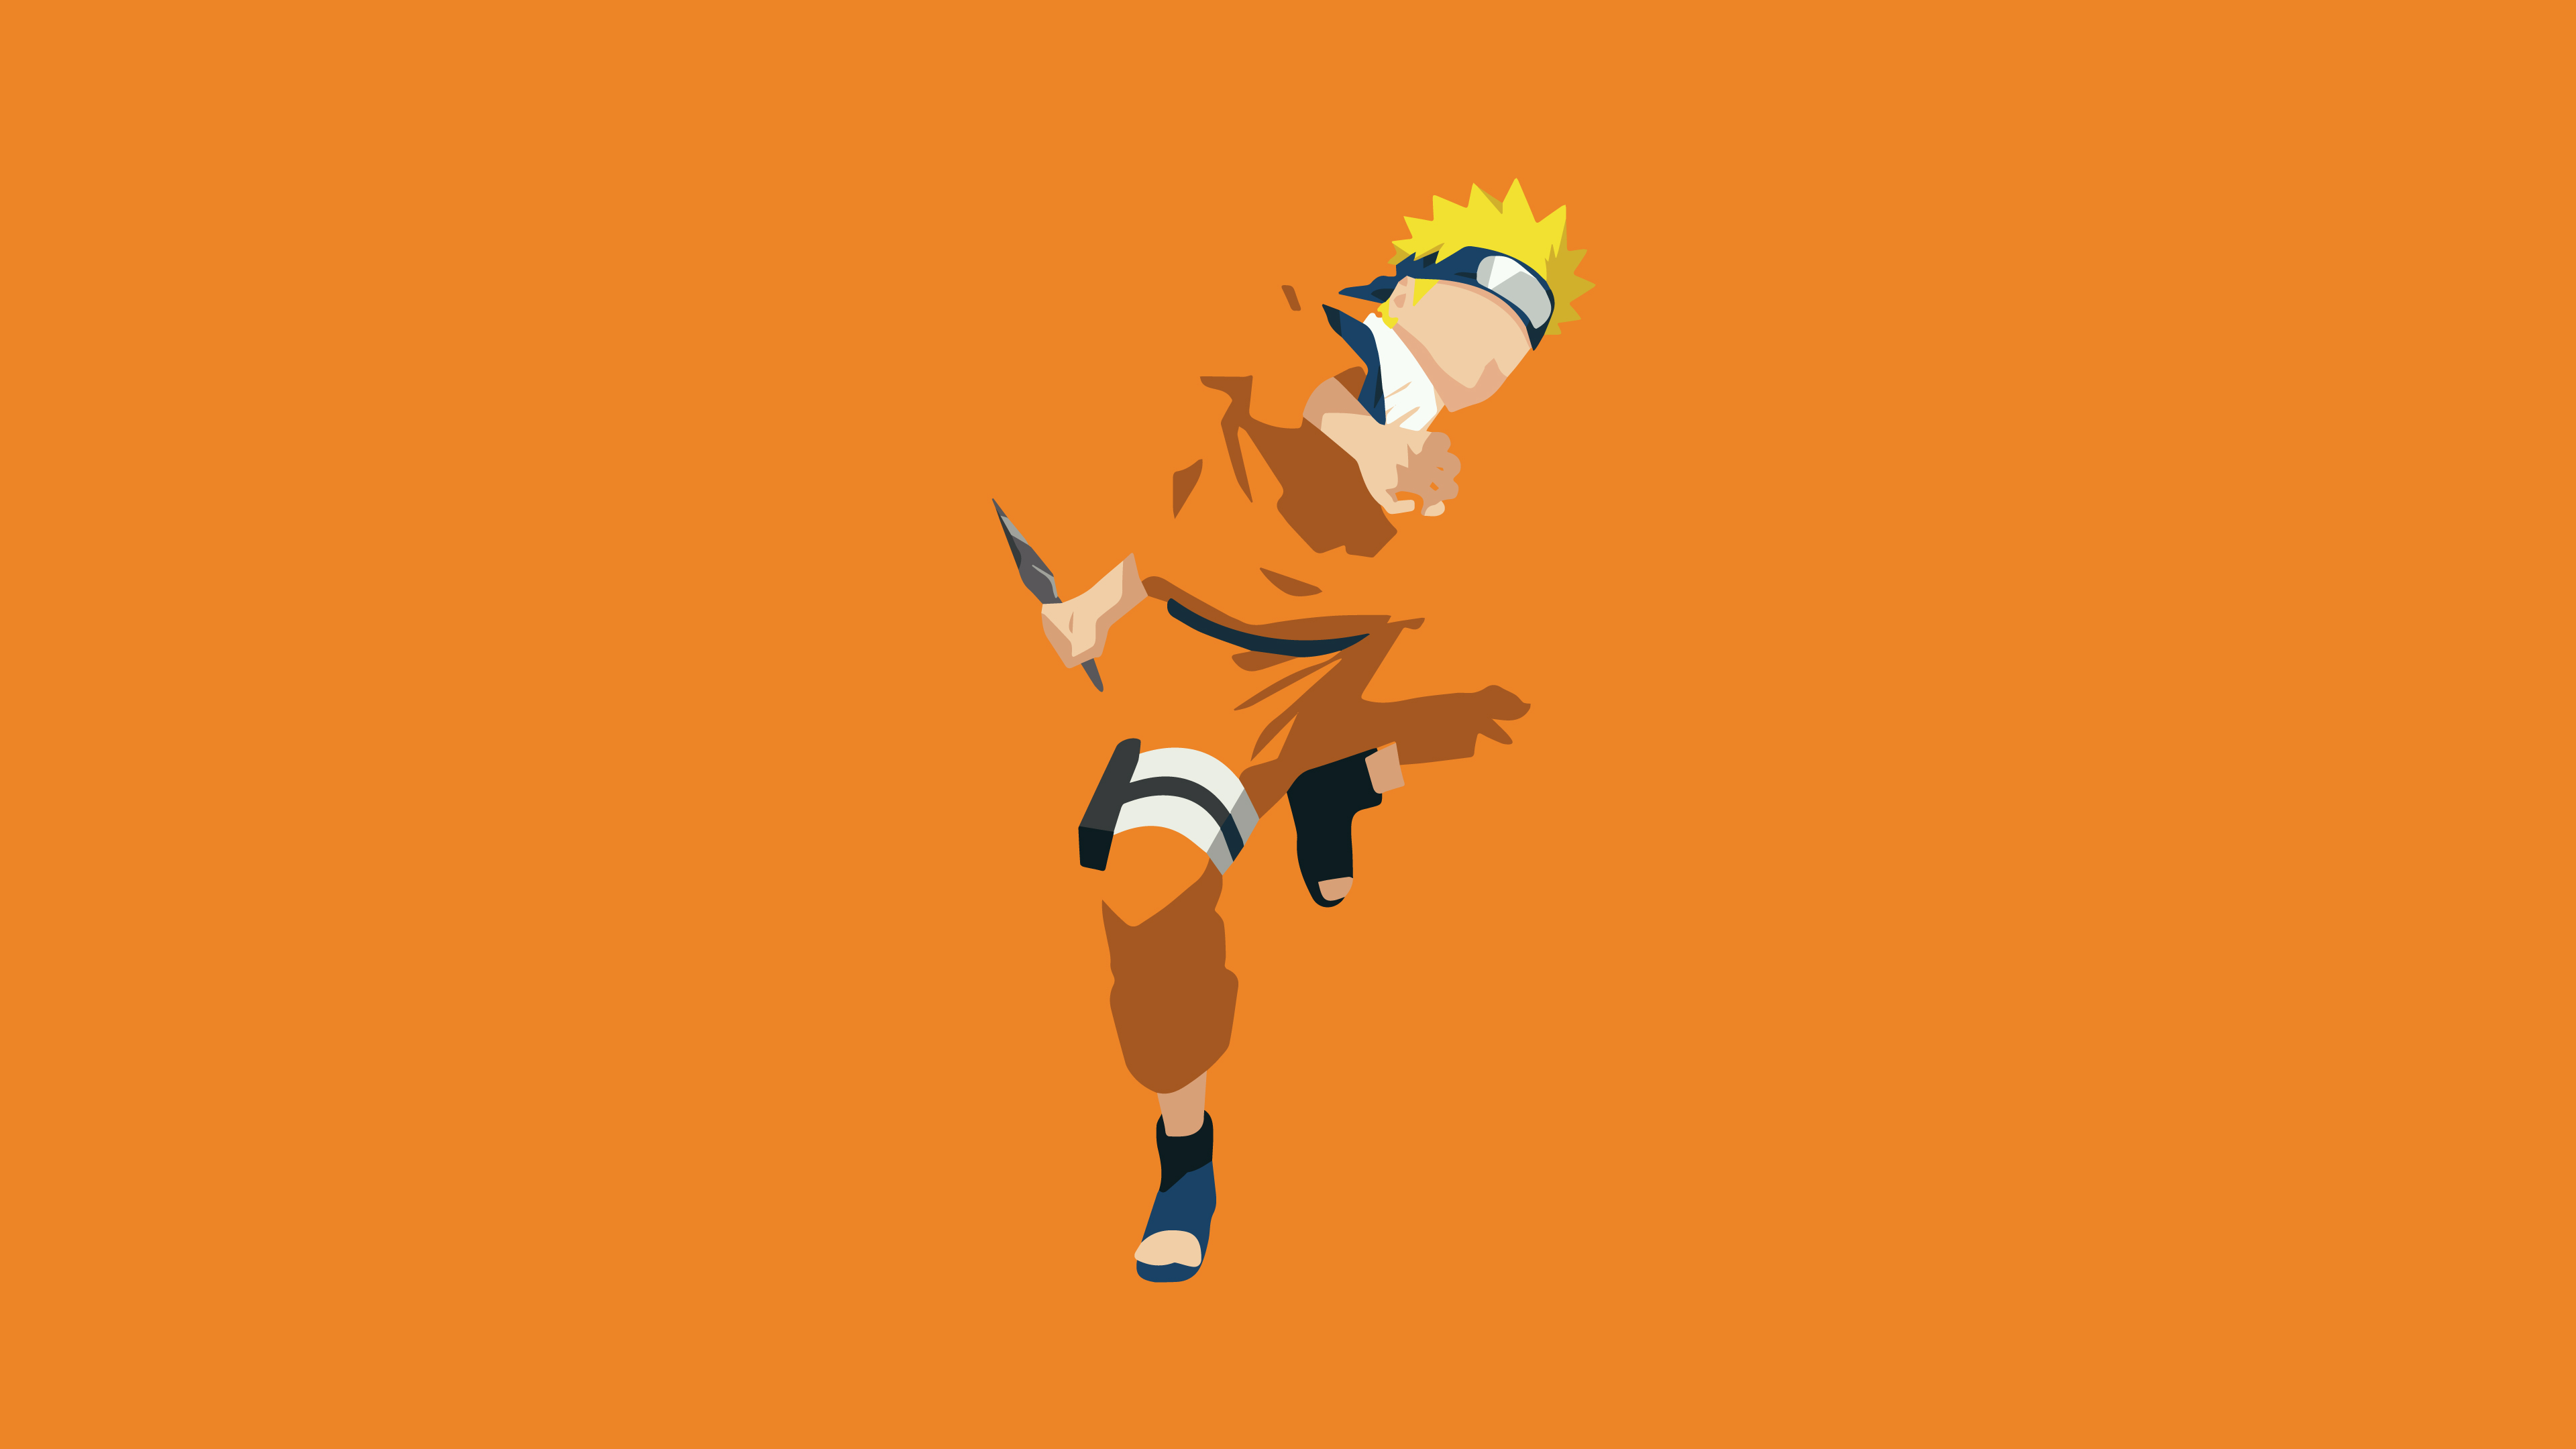 Naruto Wallpaper Wall Giftwatches Co